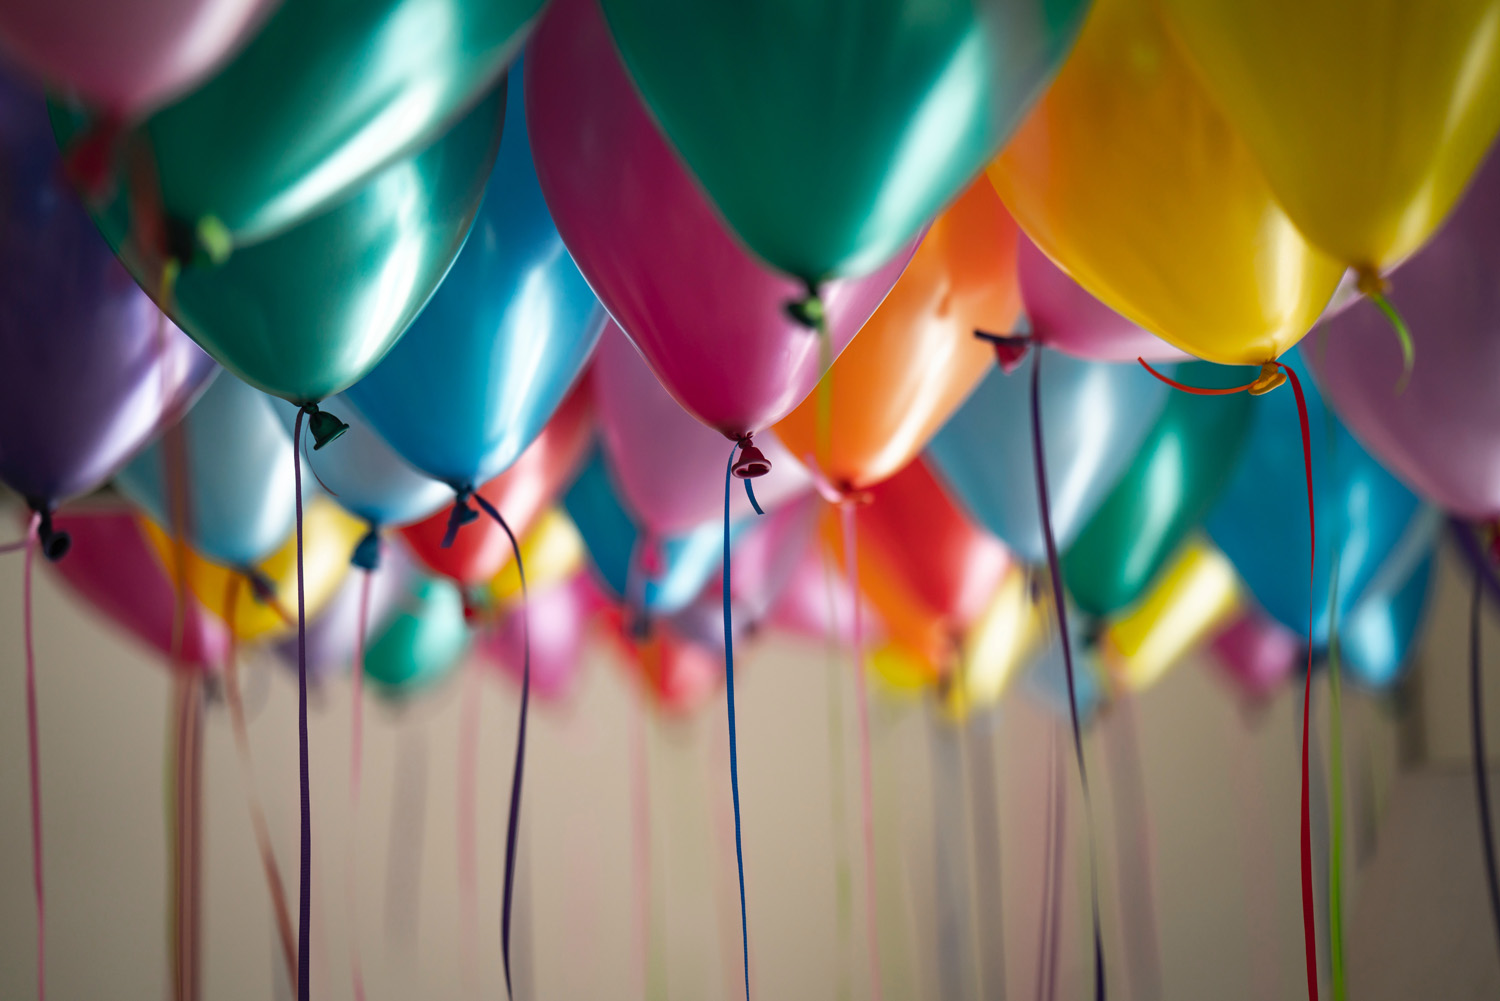 Balloons Photo by Adi Goldstein on Unsplash